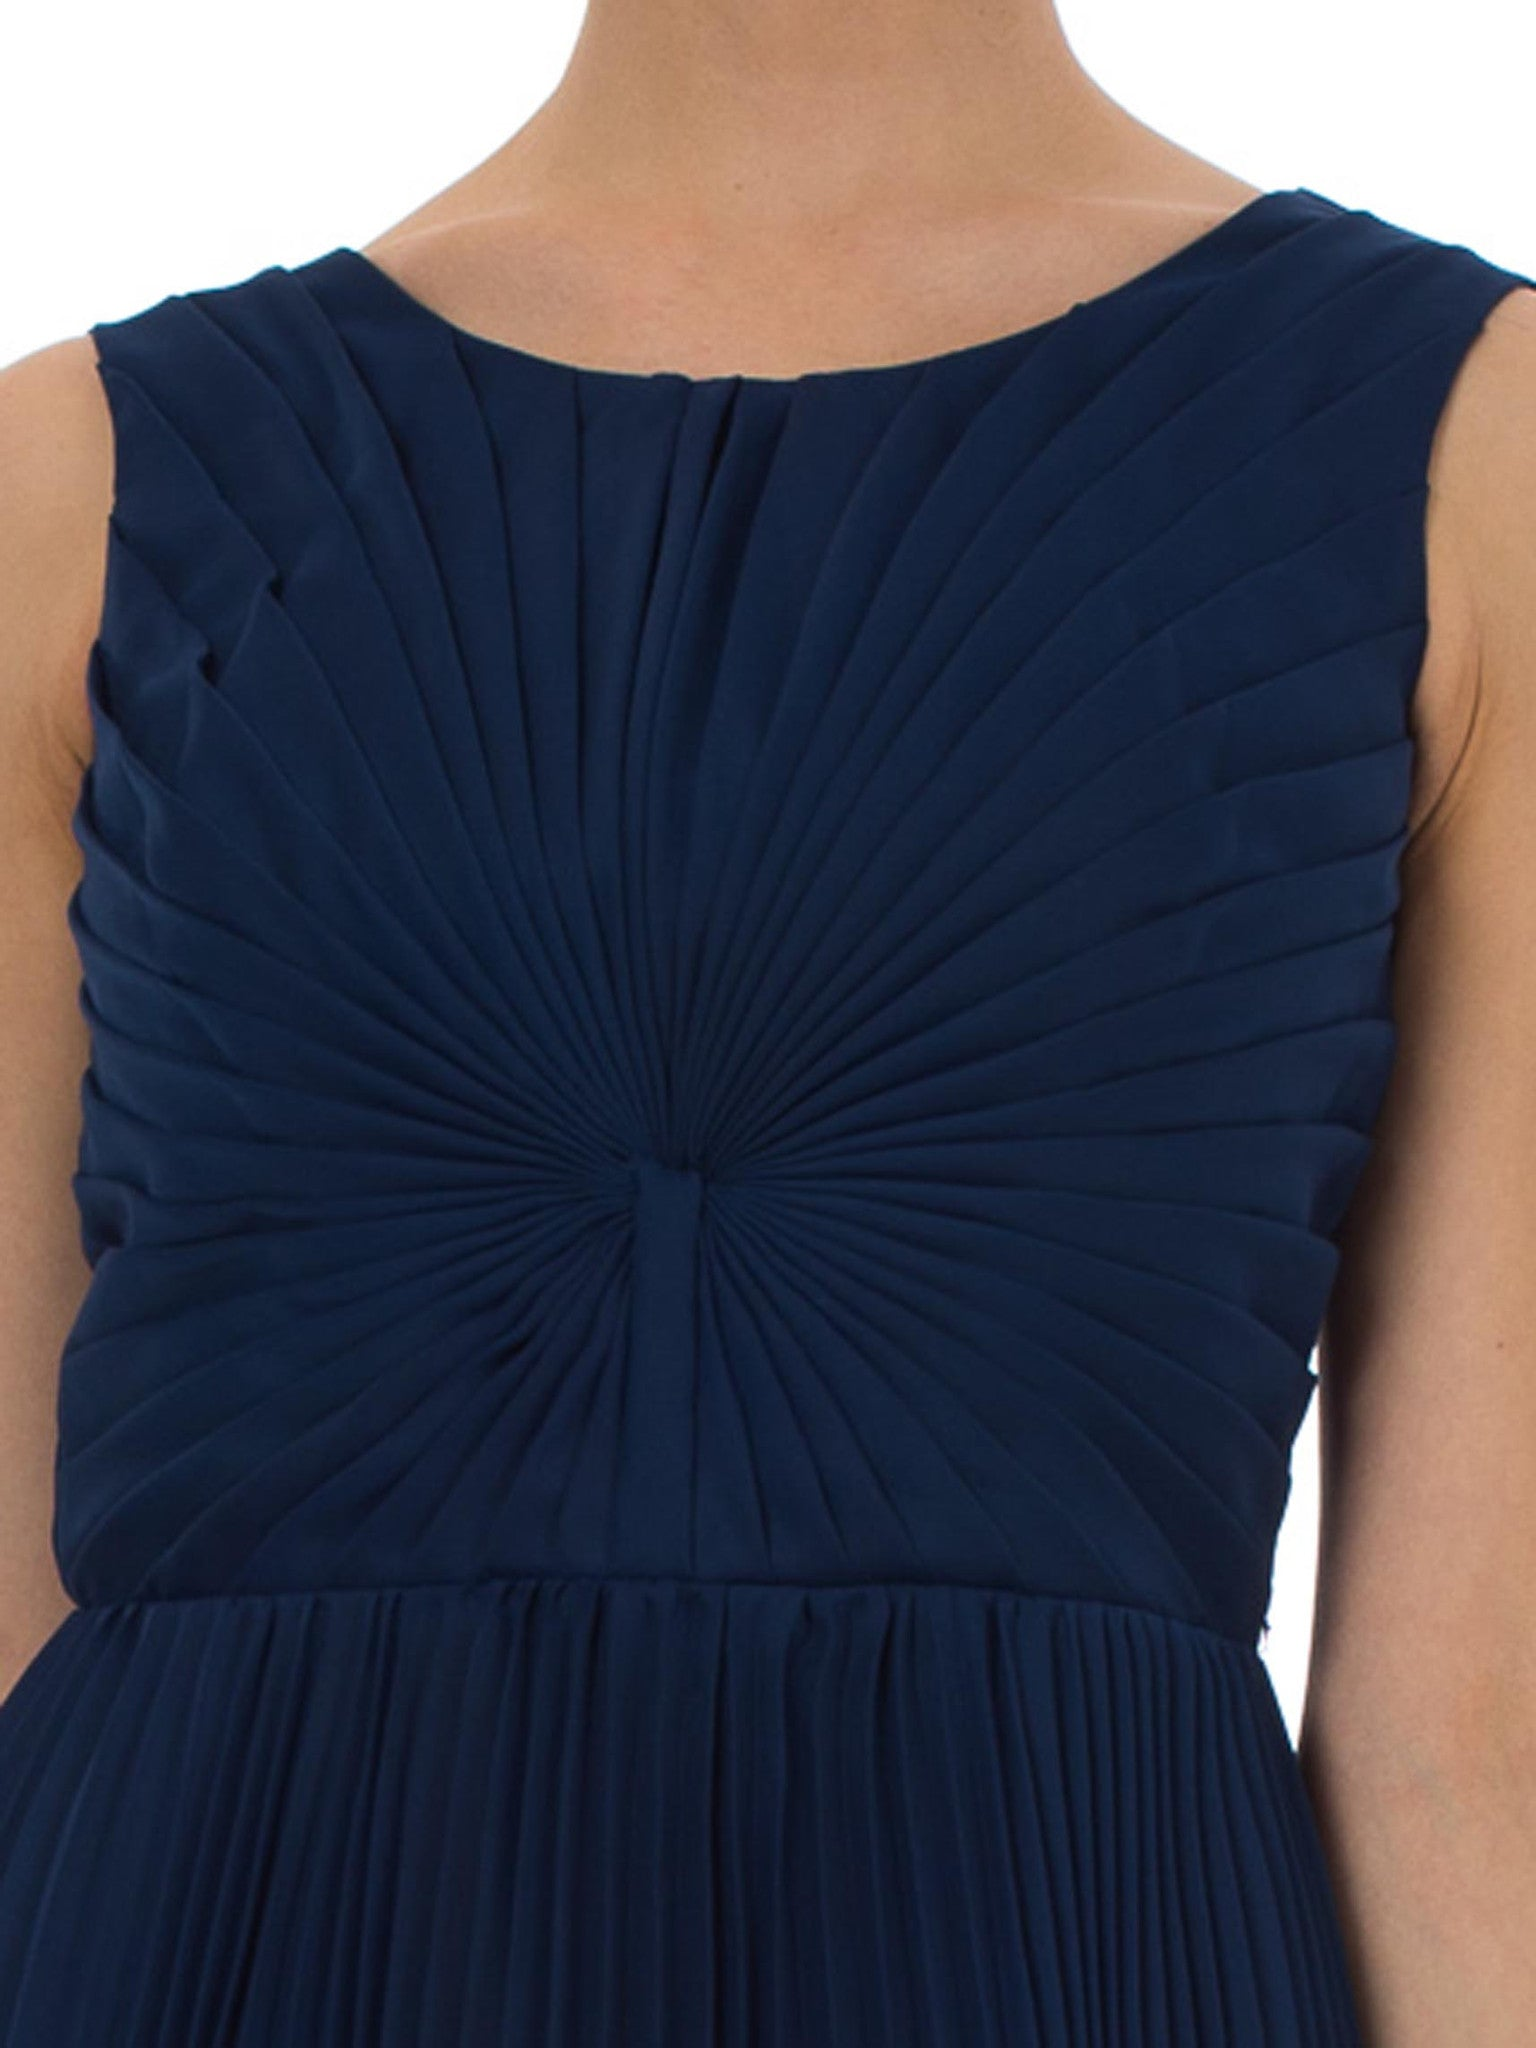 1960S Sapphire Blue  Polyester Chiffon Pleated Fan Bodice Cocktail Dress Made In France